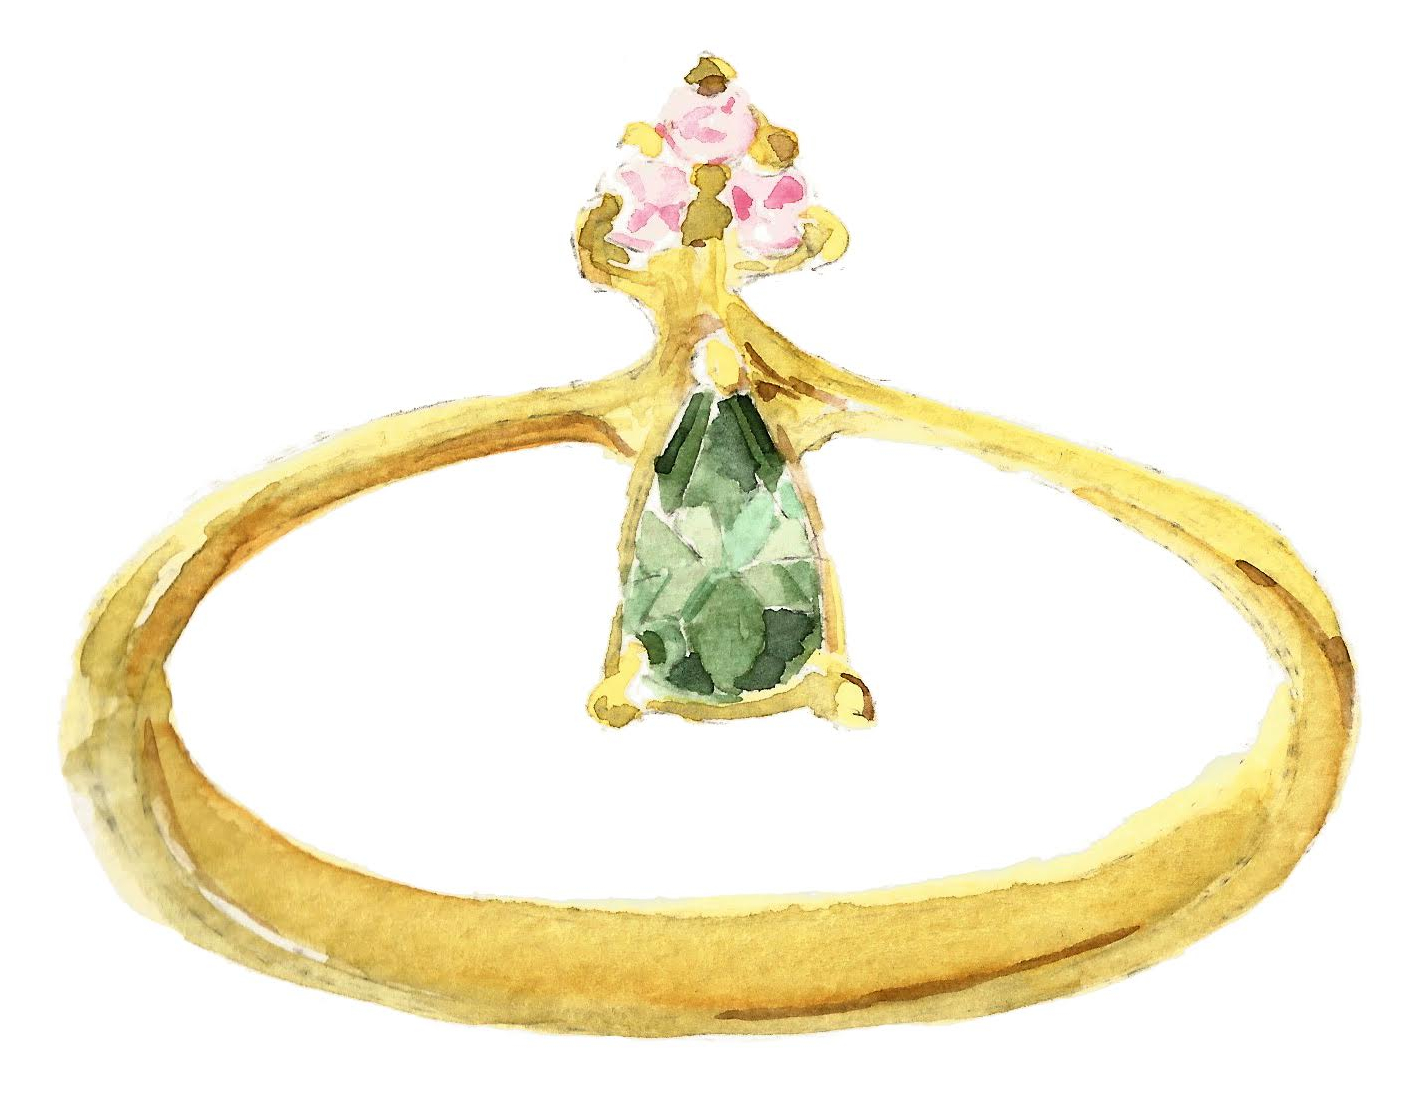 margova_jewelry_ring_rainer_metz_illustration